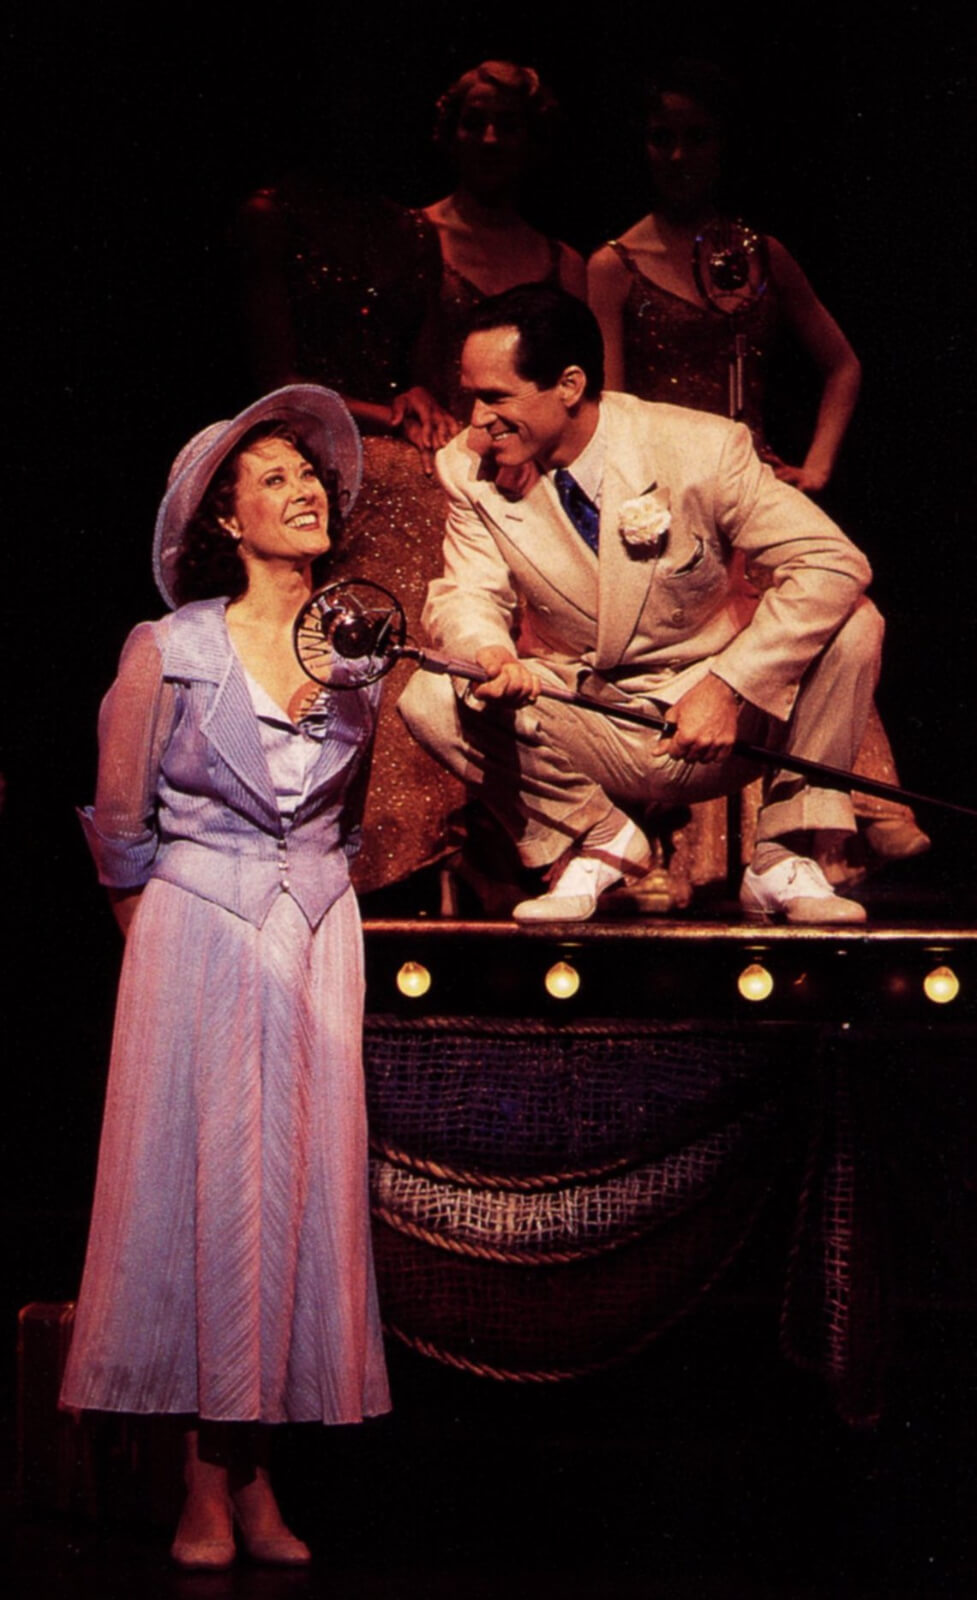 Rita Racine (Karen Ziemba in a blue sun dress and hat) and Mick Hamilton (Gregory Harrison on a platform with microphone, squatting with microphone to speak to her and make sure she is heard).